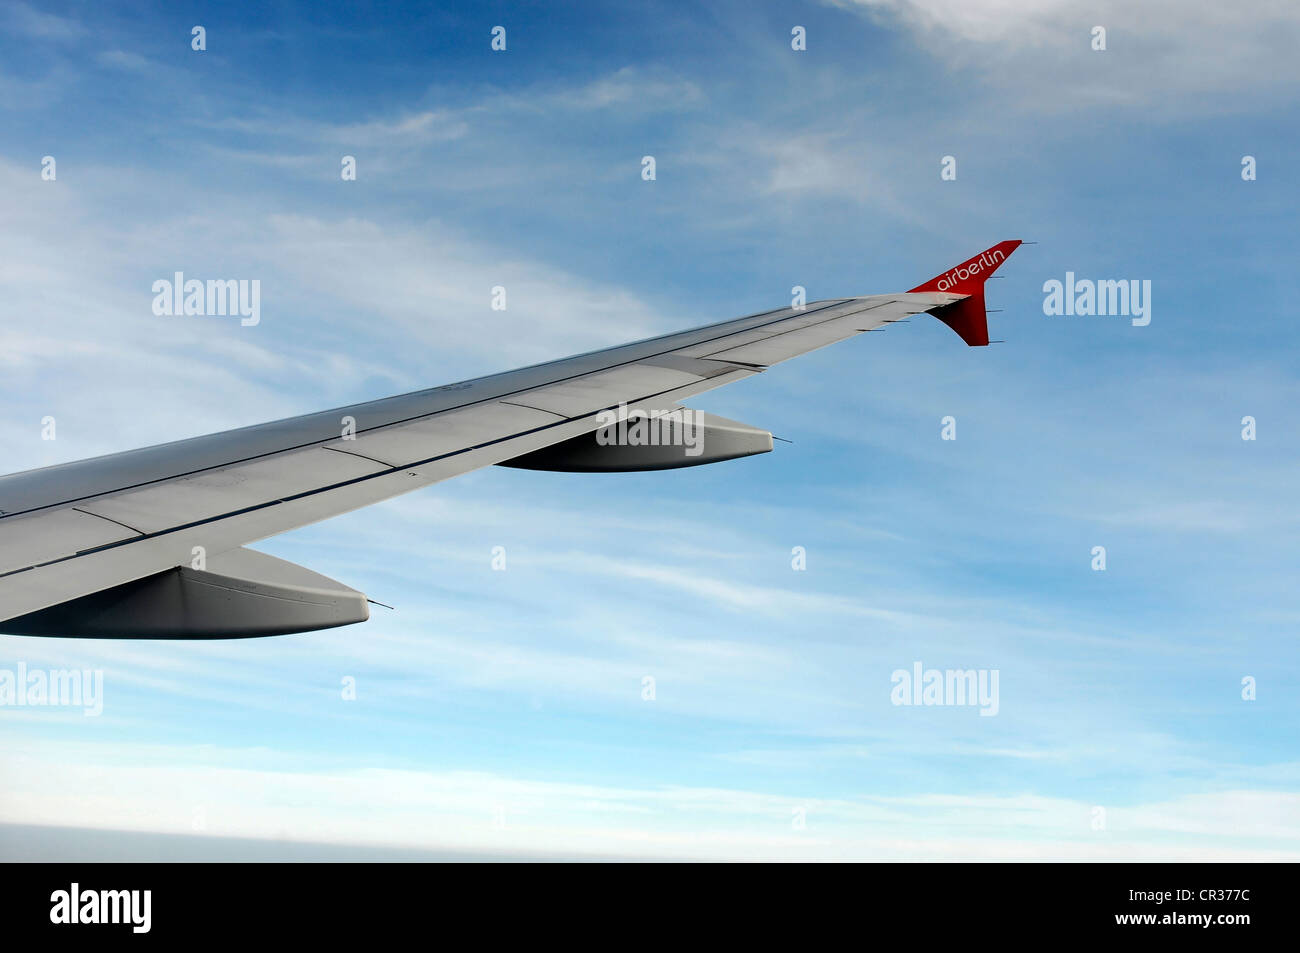 Right wing, Airbus A 319 in flight above clouds - Stock Image